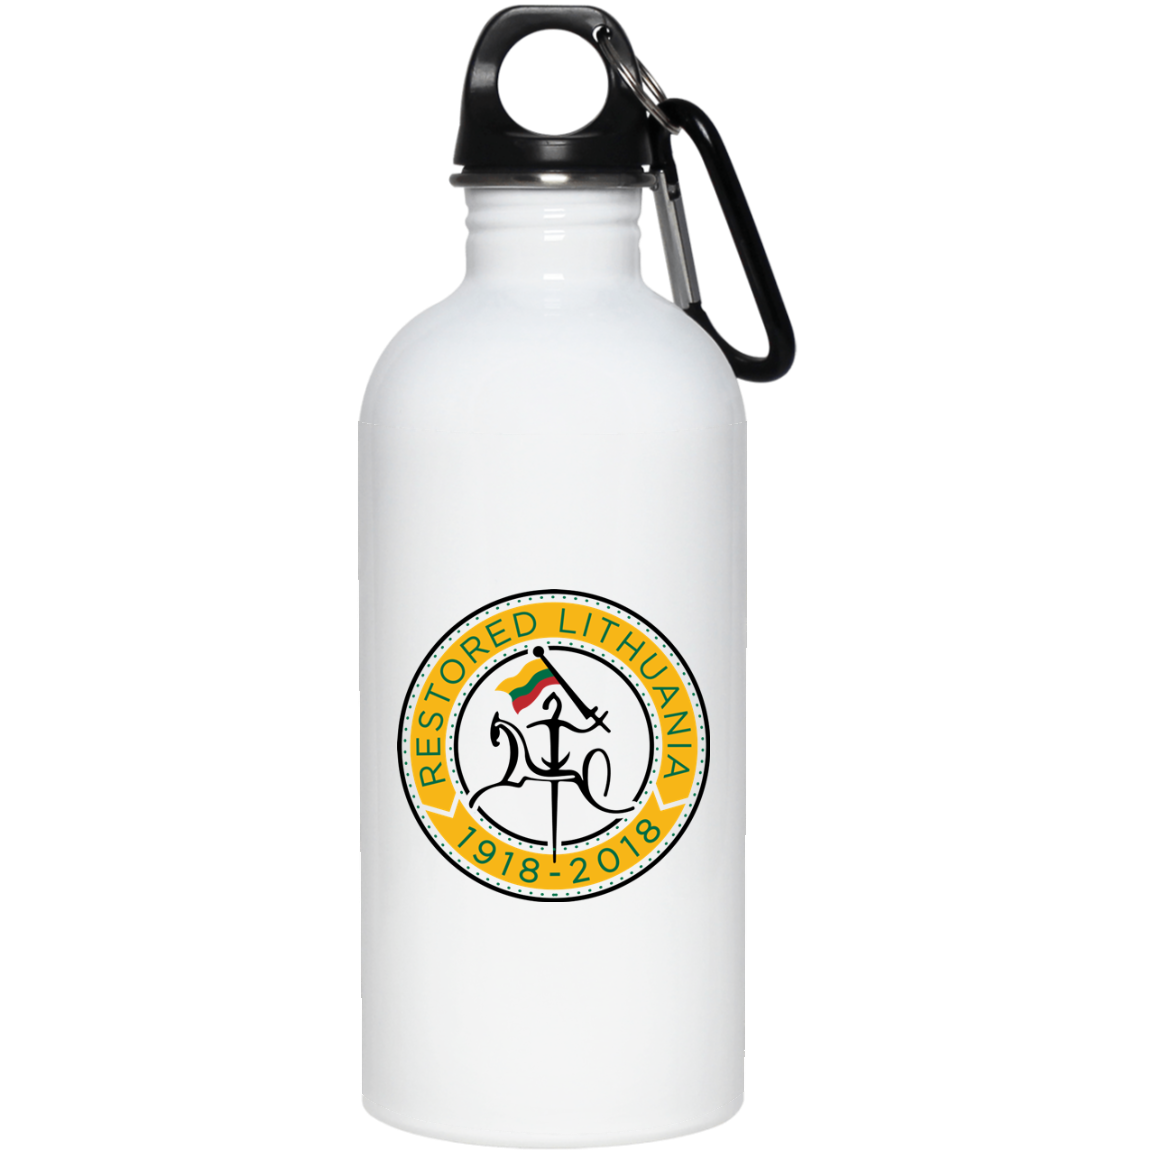 Restored 100 (Vytis Yellow Circle) -- Suvenyrai Stainless Steel Water Bottle